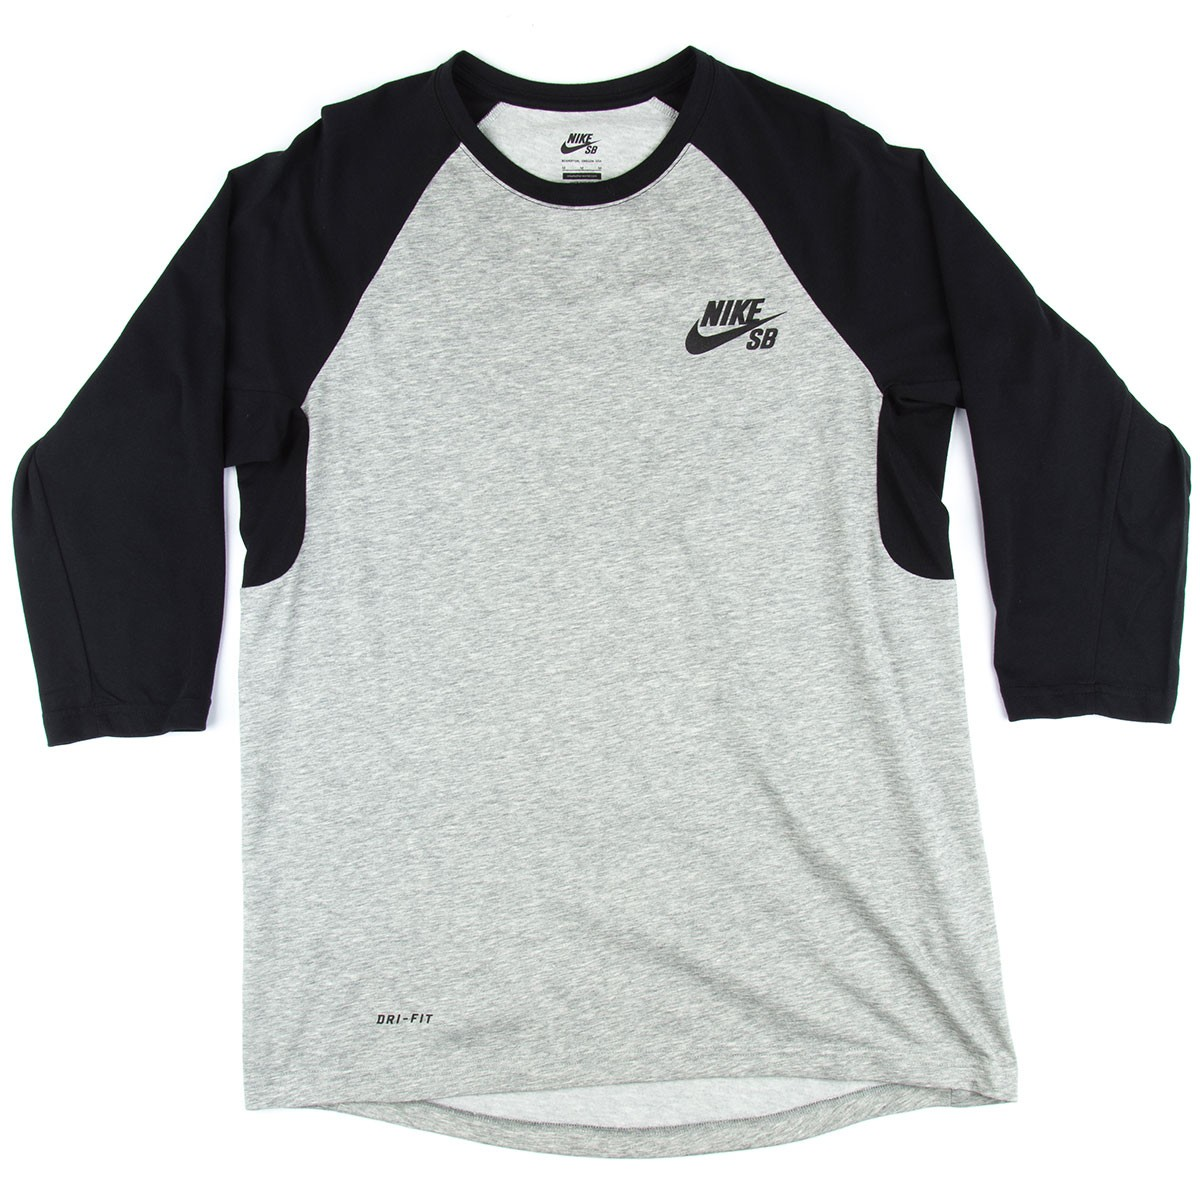 Nike Sb Dri Fit 3 4 Sleeve Crew T Shirt Dark Heather